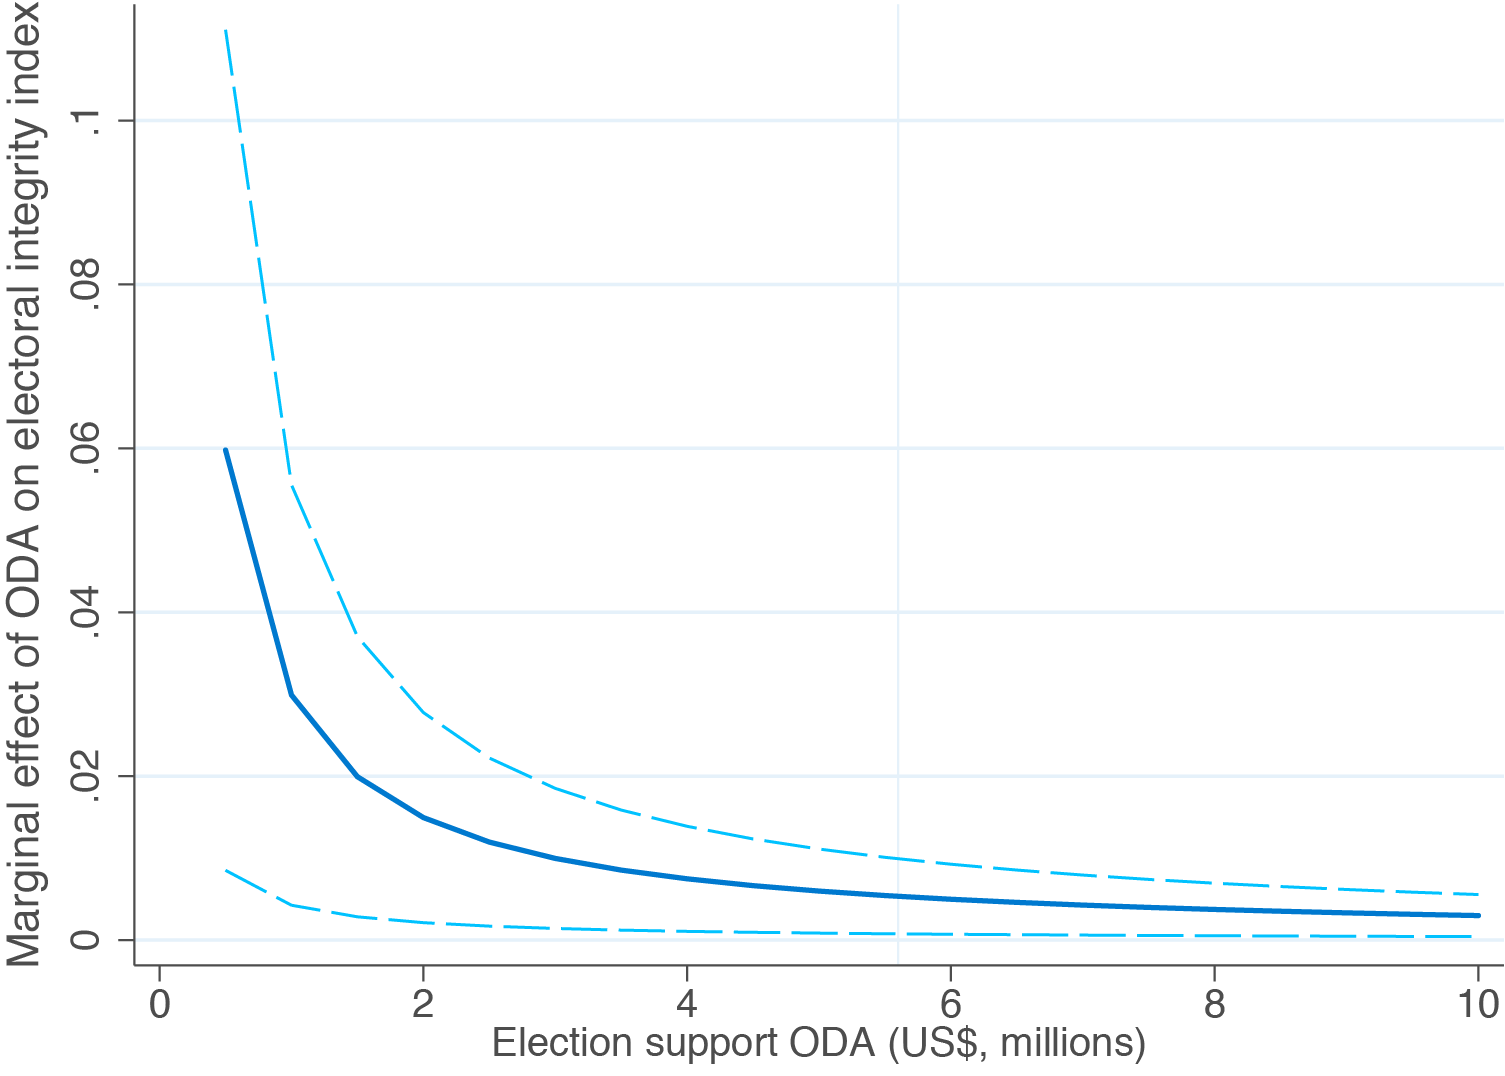 Figure 3: Estimated effect of election-support ODA on electoral integrity (95% confidence interval)